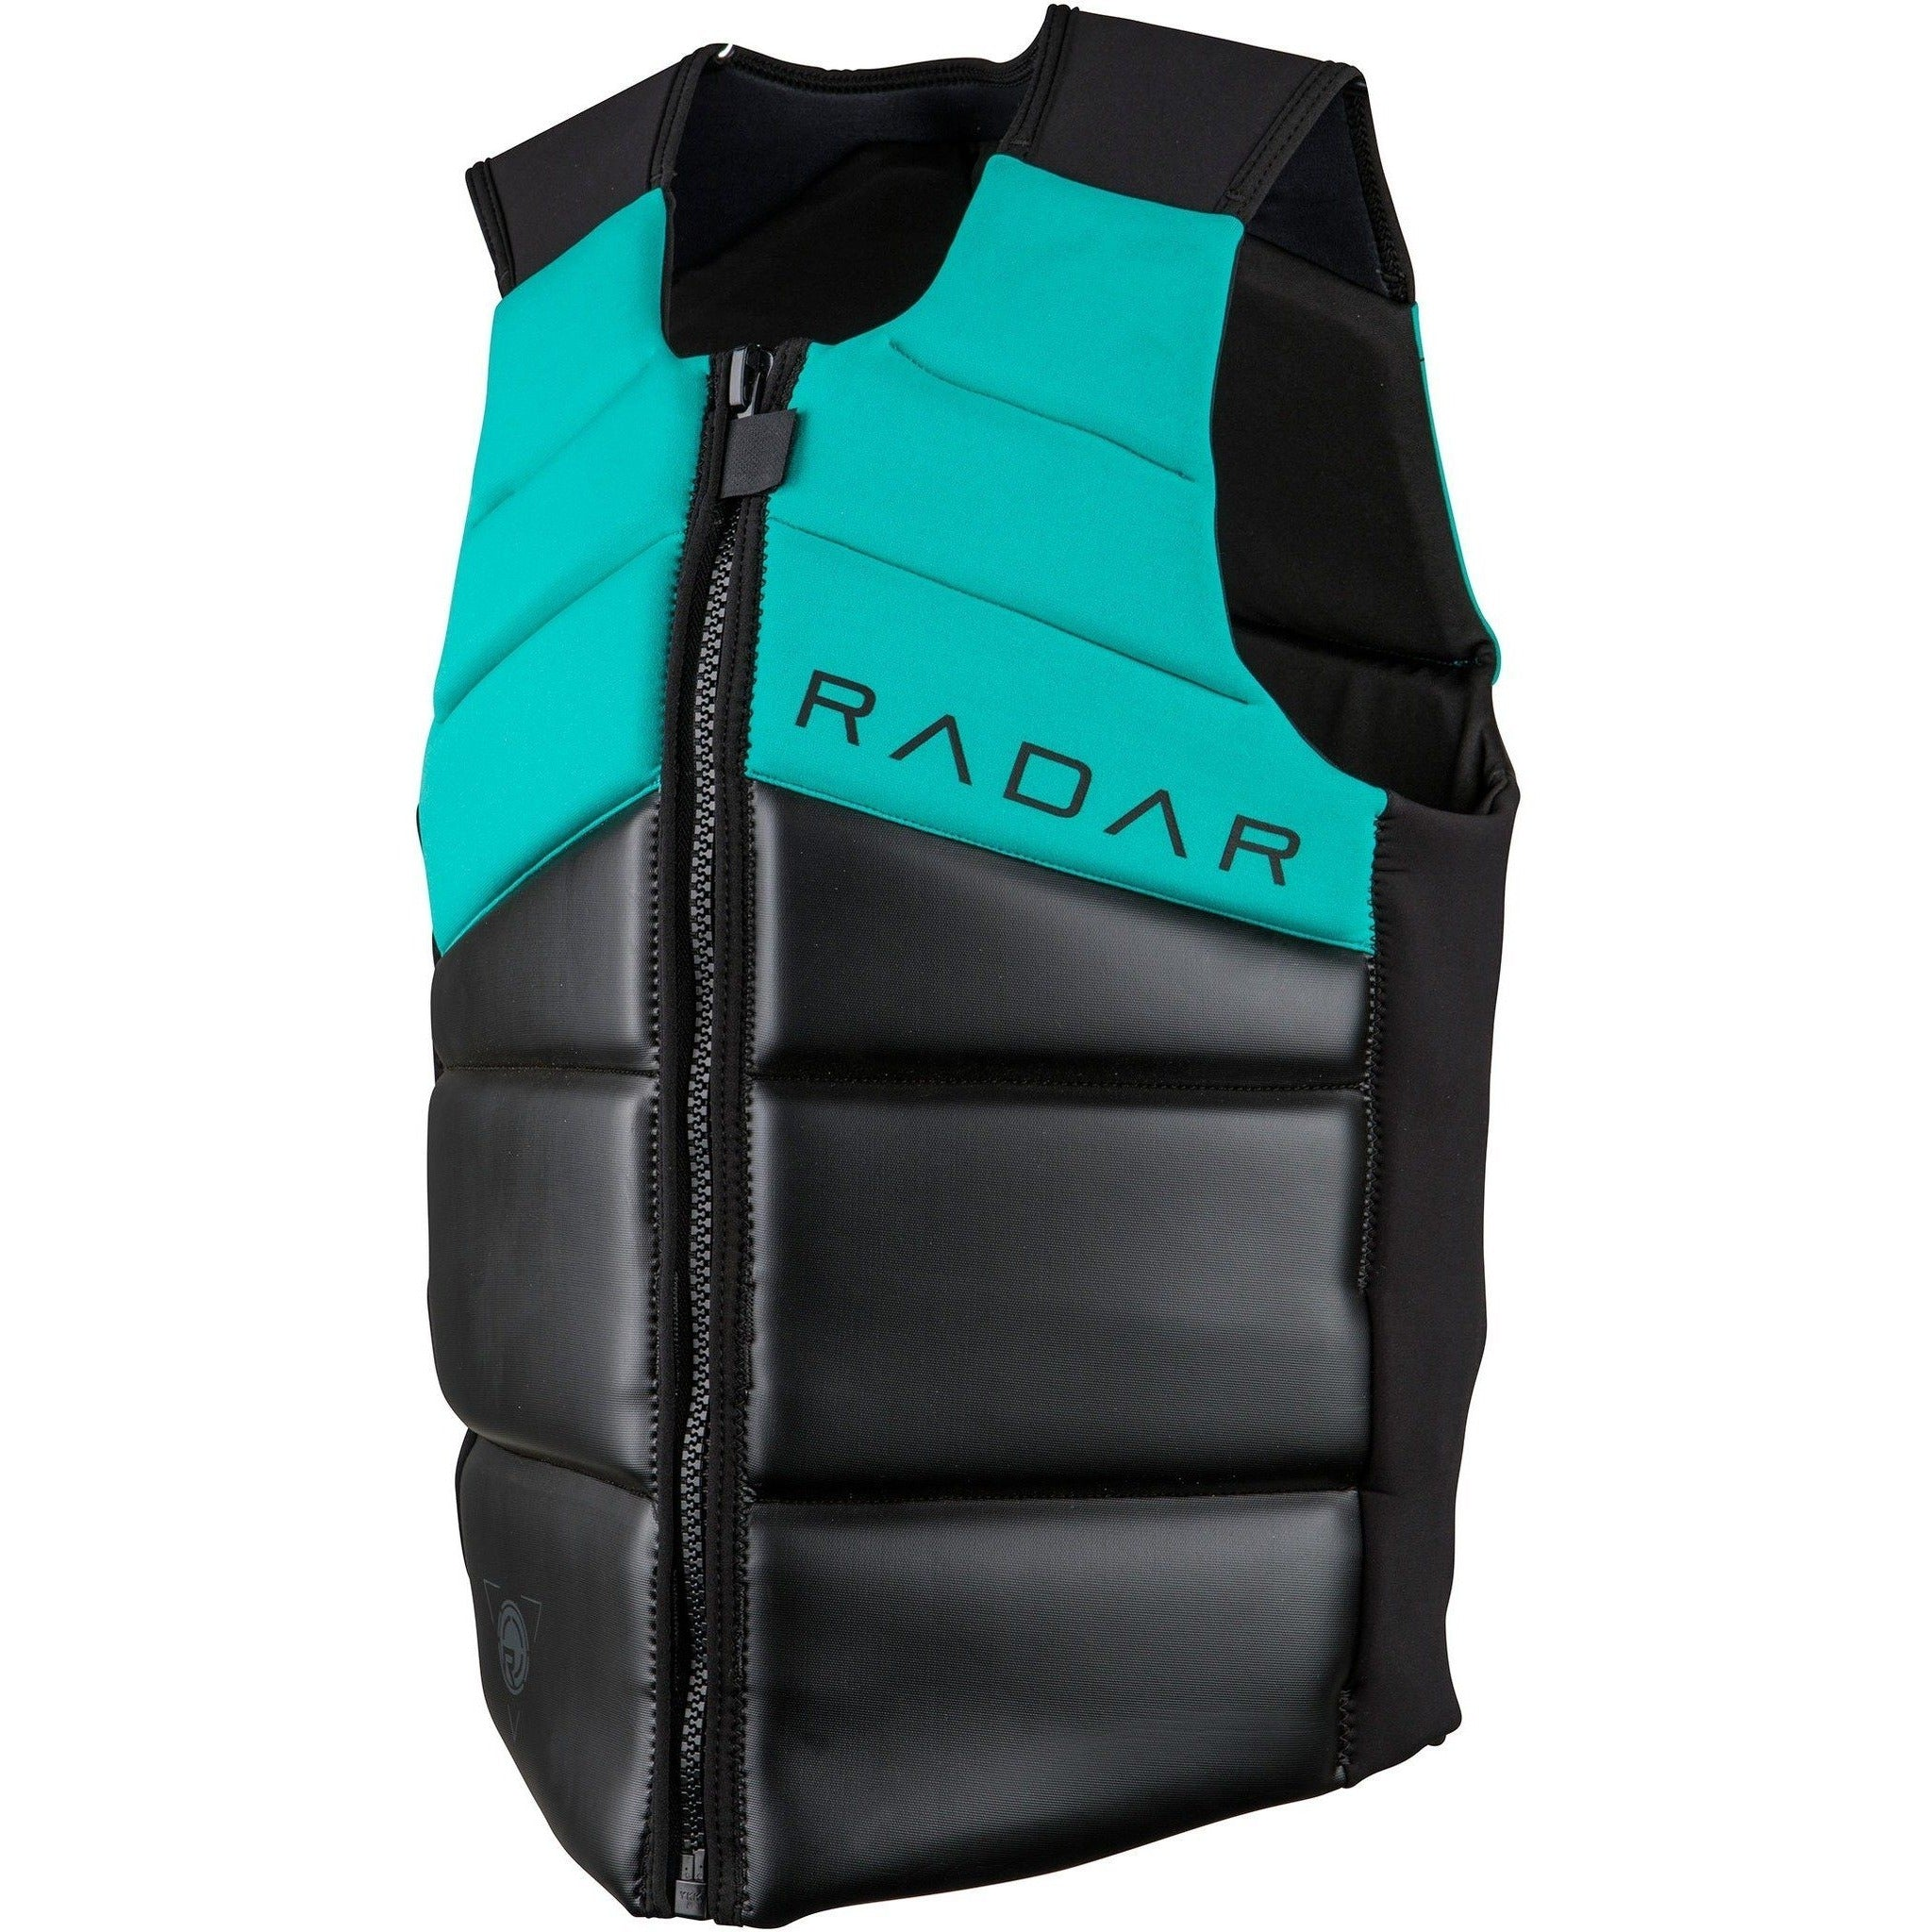 Radar Vapor BOA Life Jacket - 88 Gear